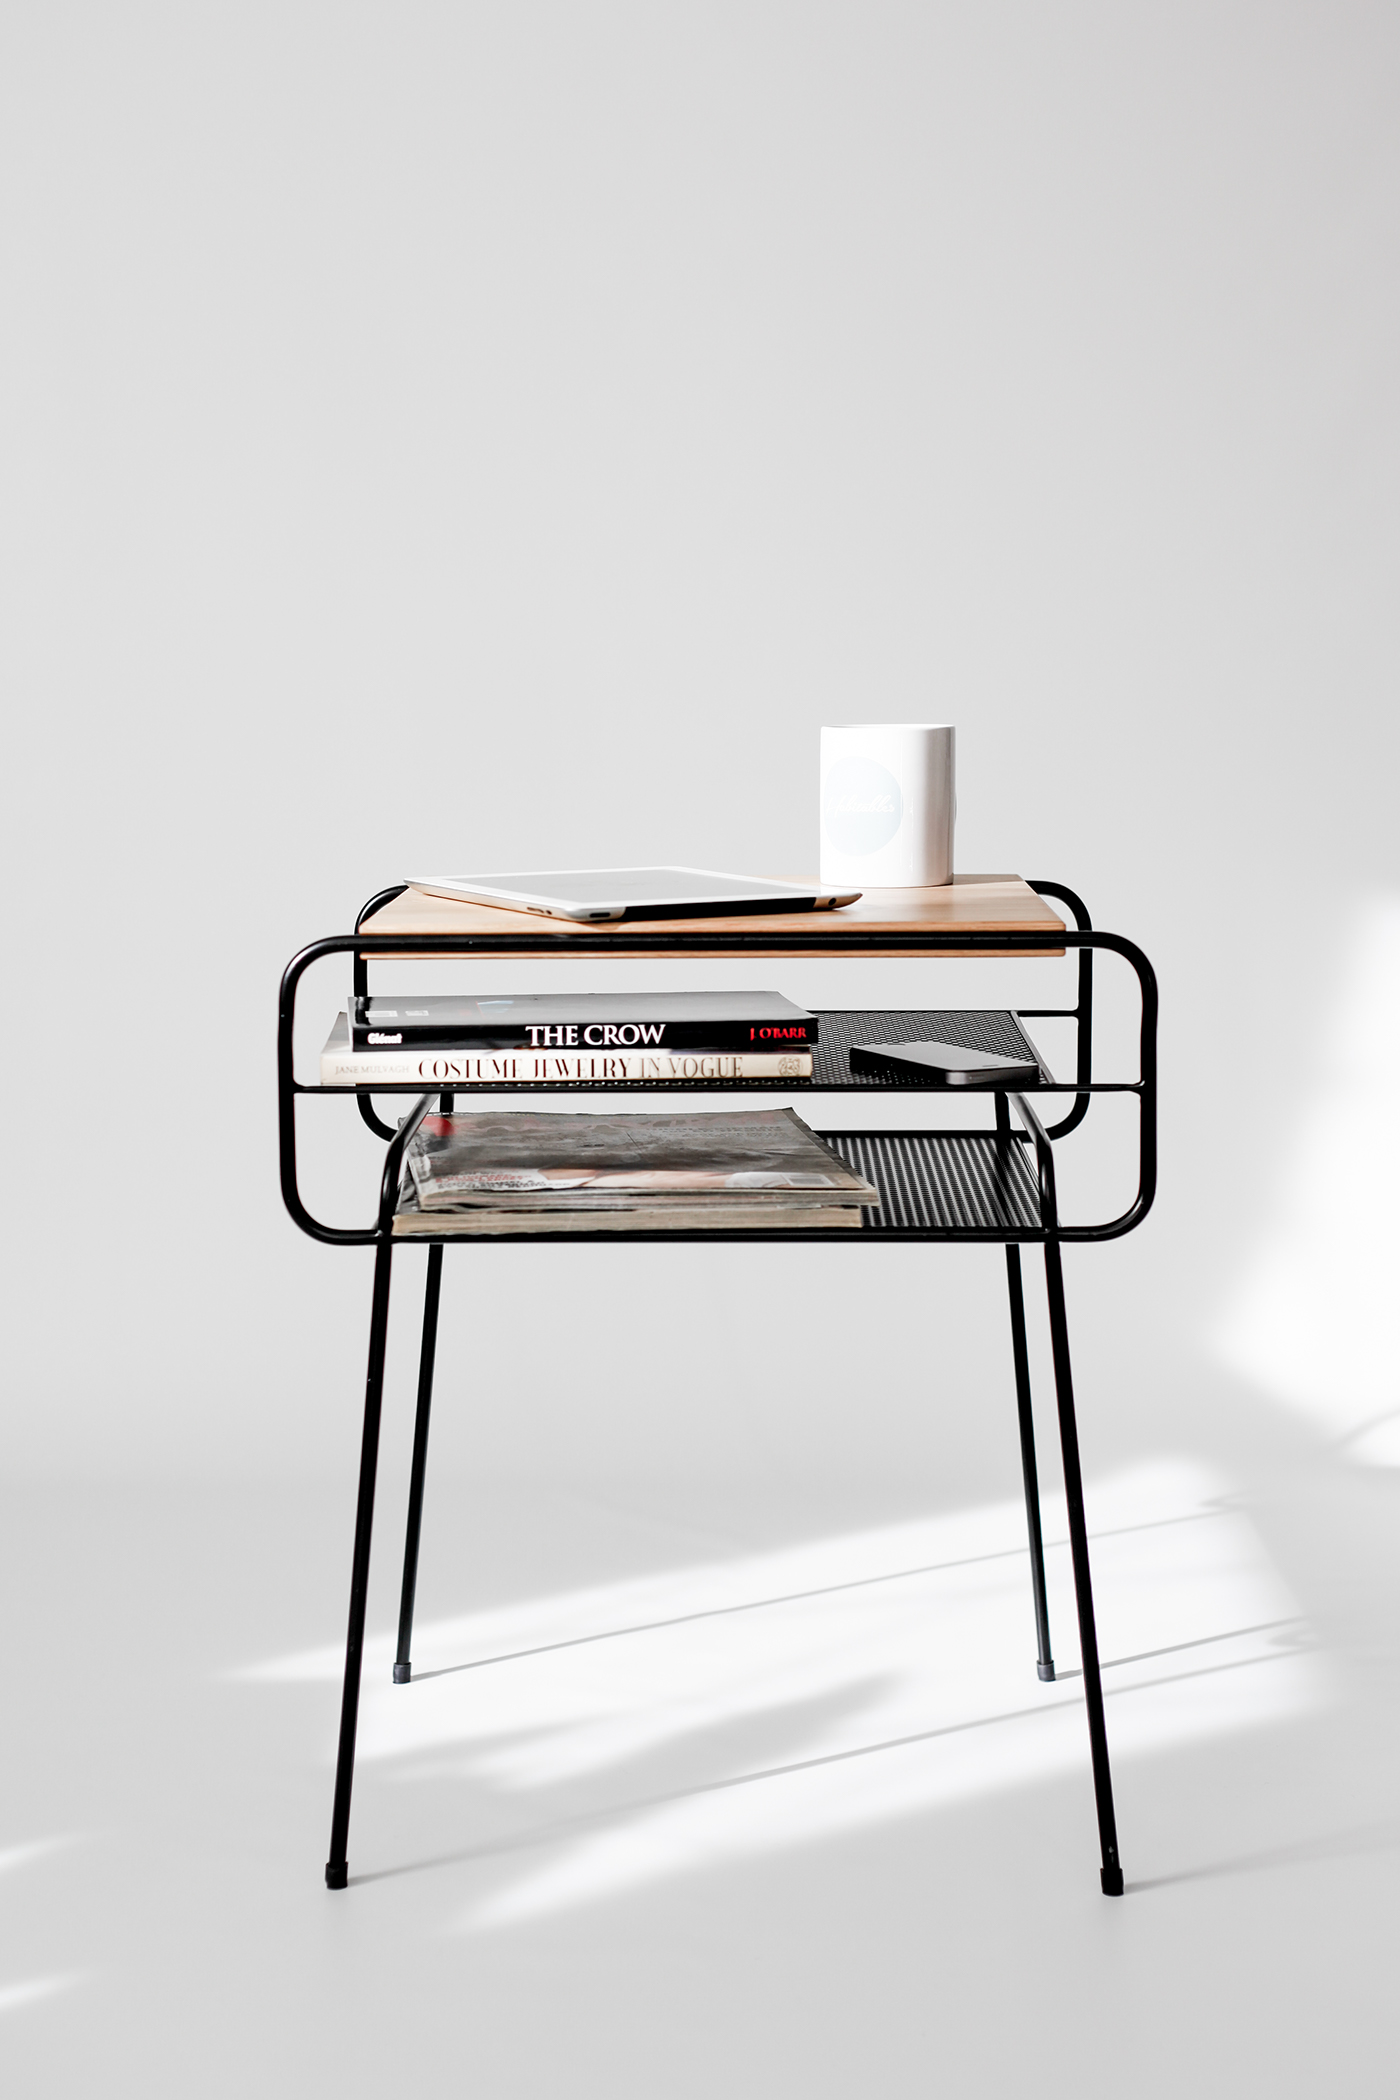 Black Metal Bedside Tables: Double Nightstand Iron & Wood Series On Behance